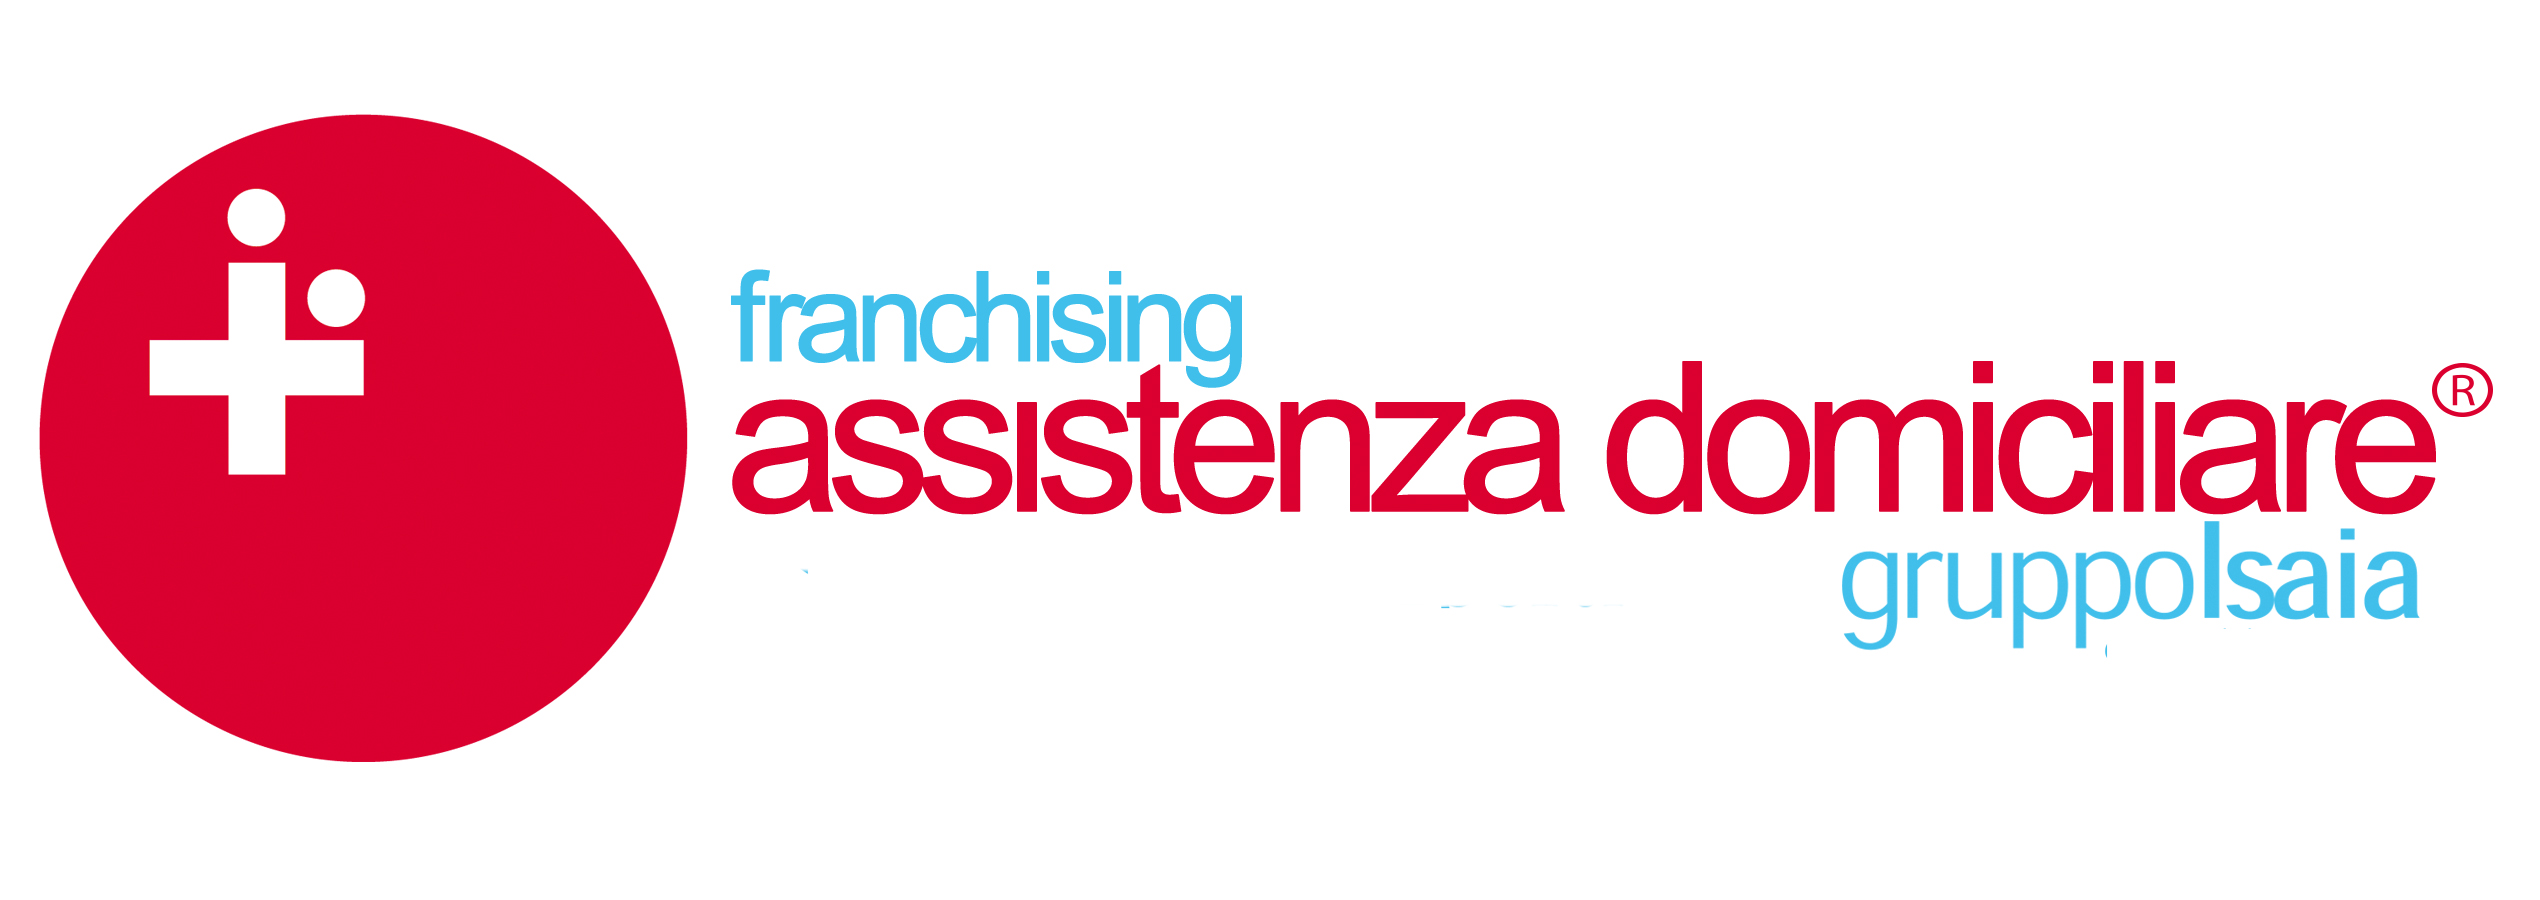 franchising assistenza domiciliare